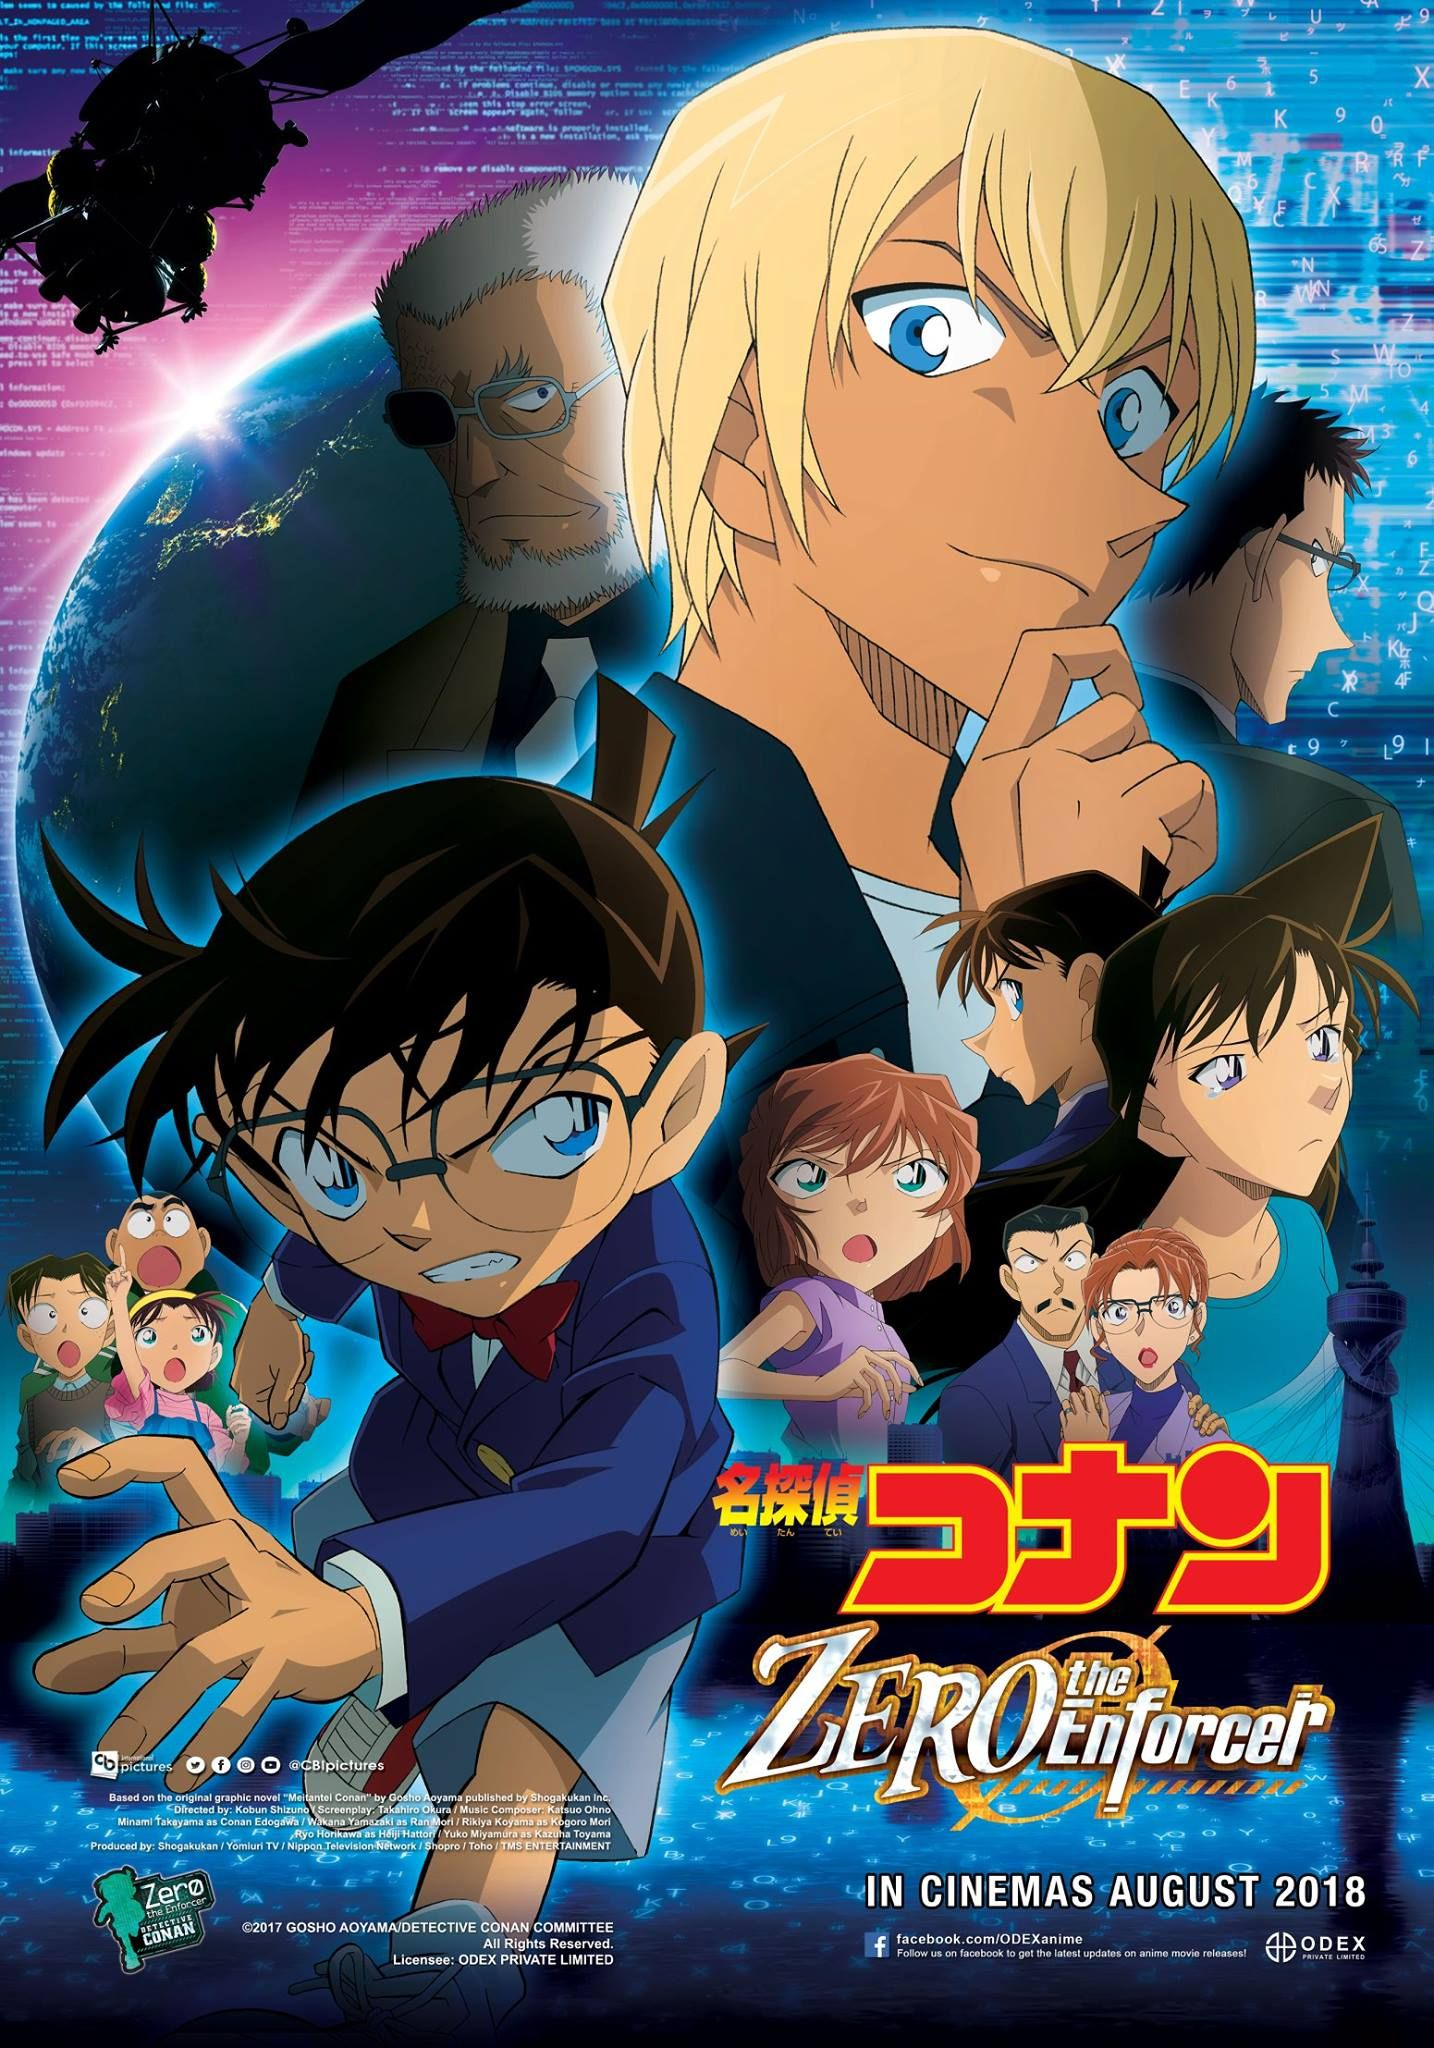 [REVIEW] Detective Conan Zero the Enforcer, Perlihatkan